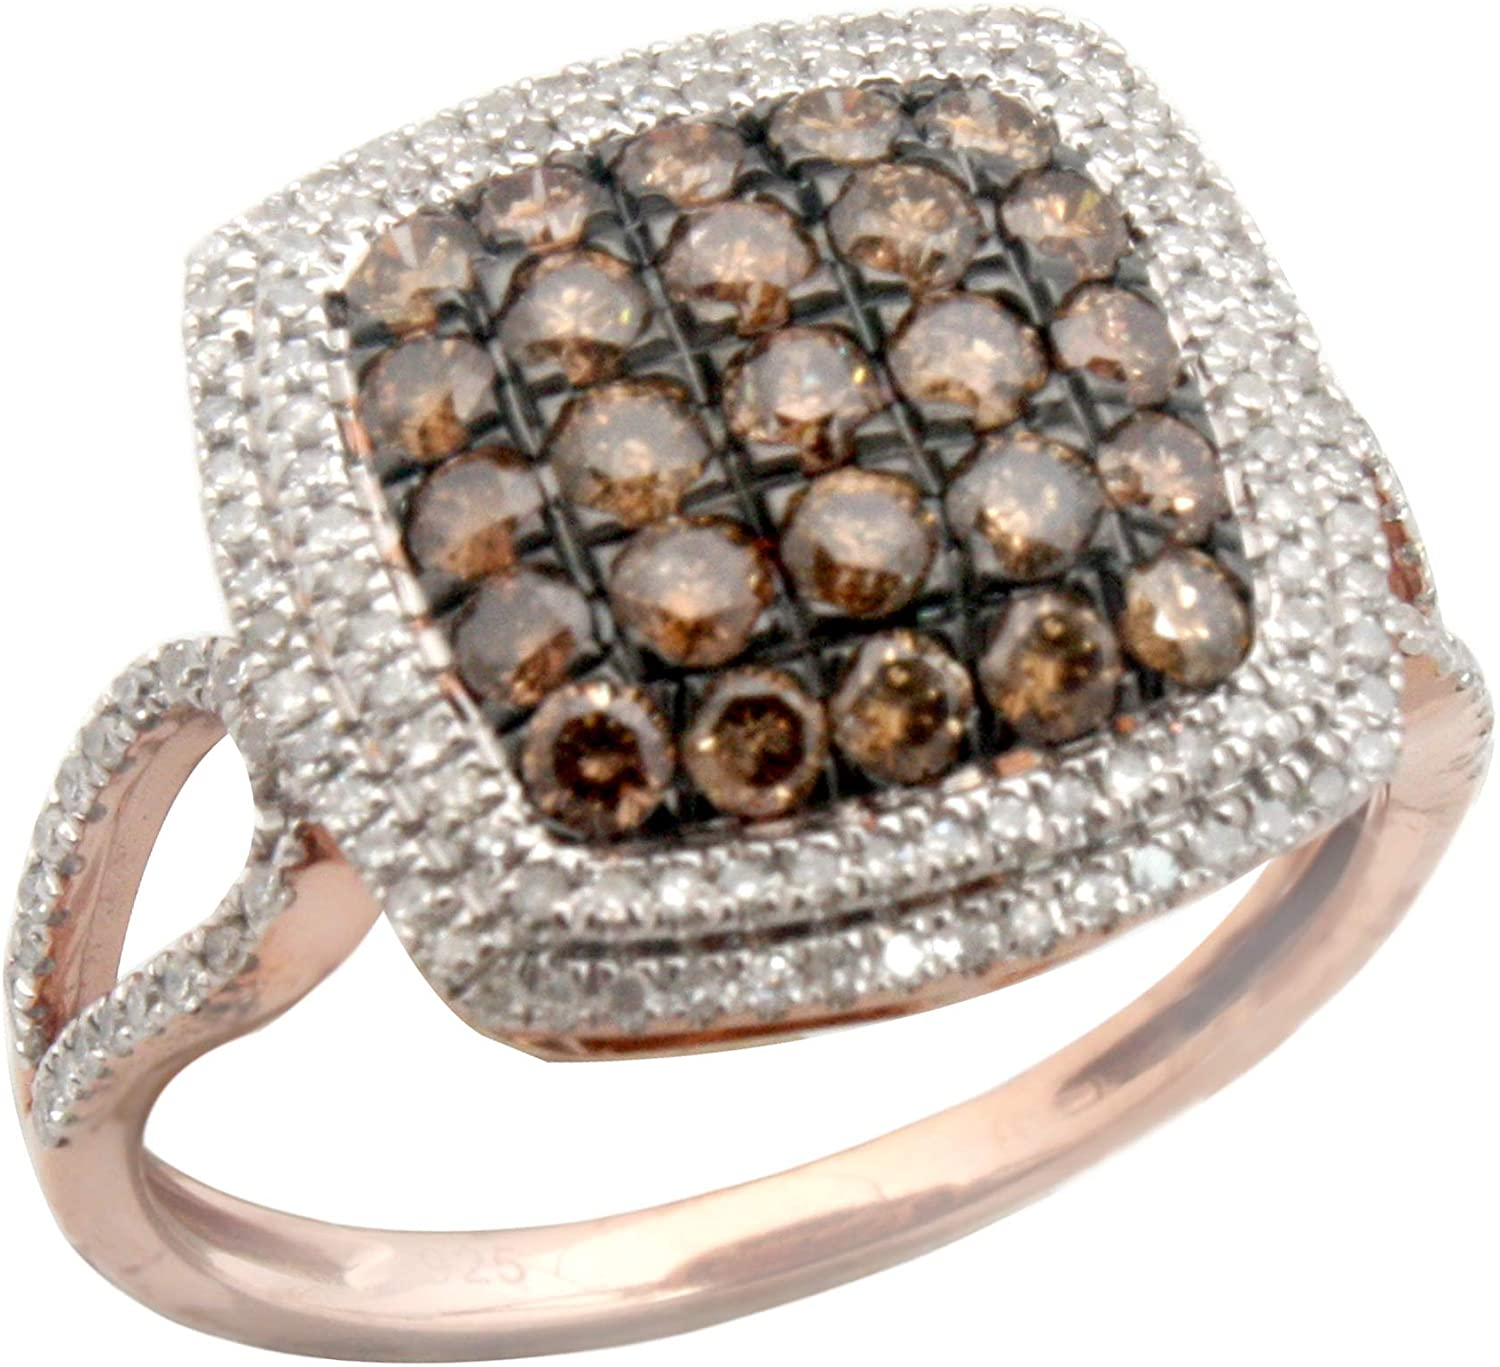 Prism jewel 1.02 Carat Round Natural Brown Diamond & White Diamond Cluster Ring, Rose Gold Plated Silver, Size 7